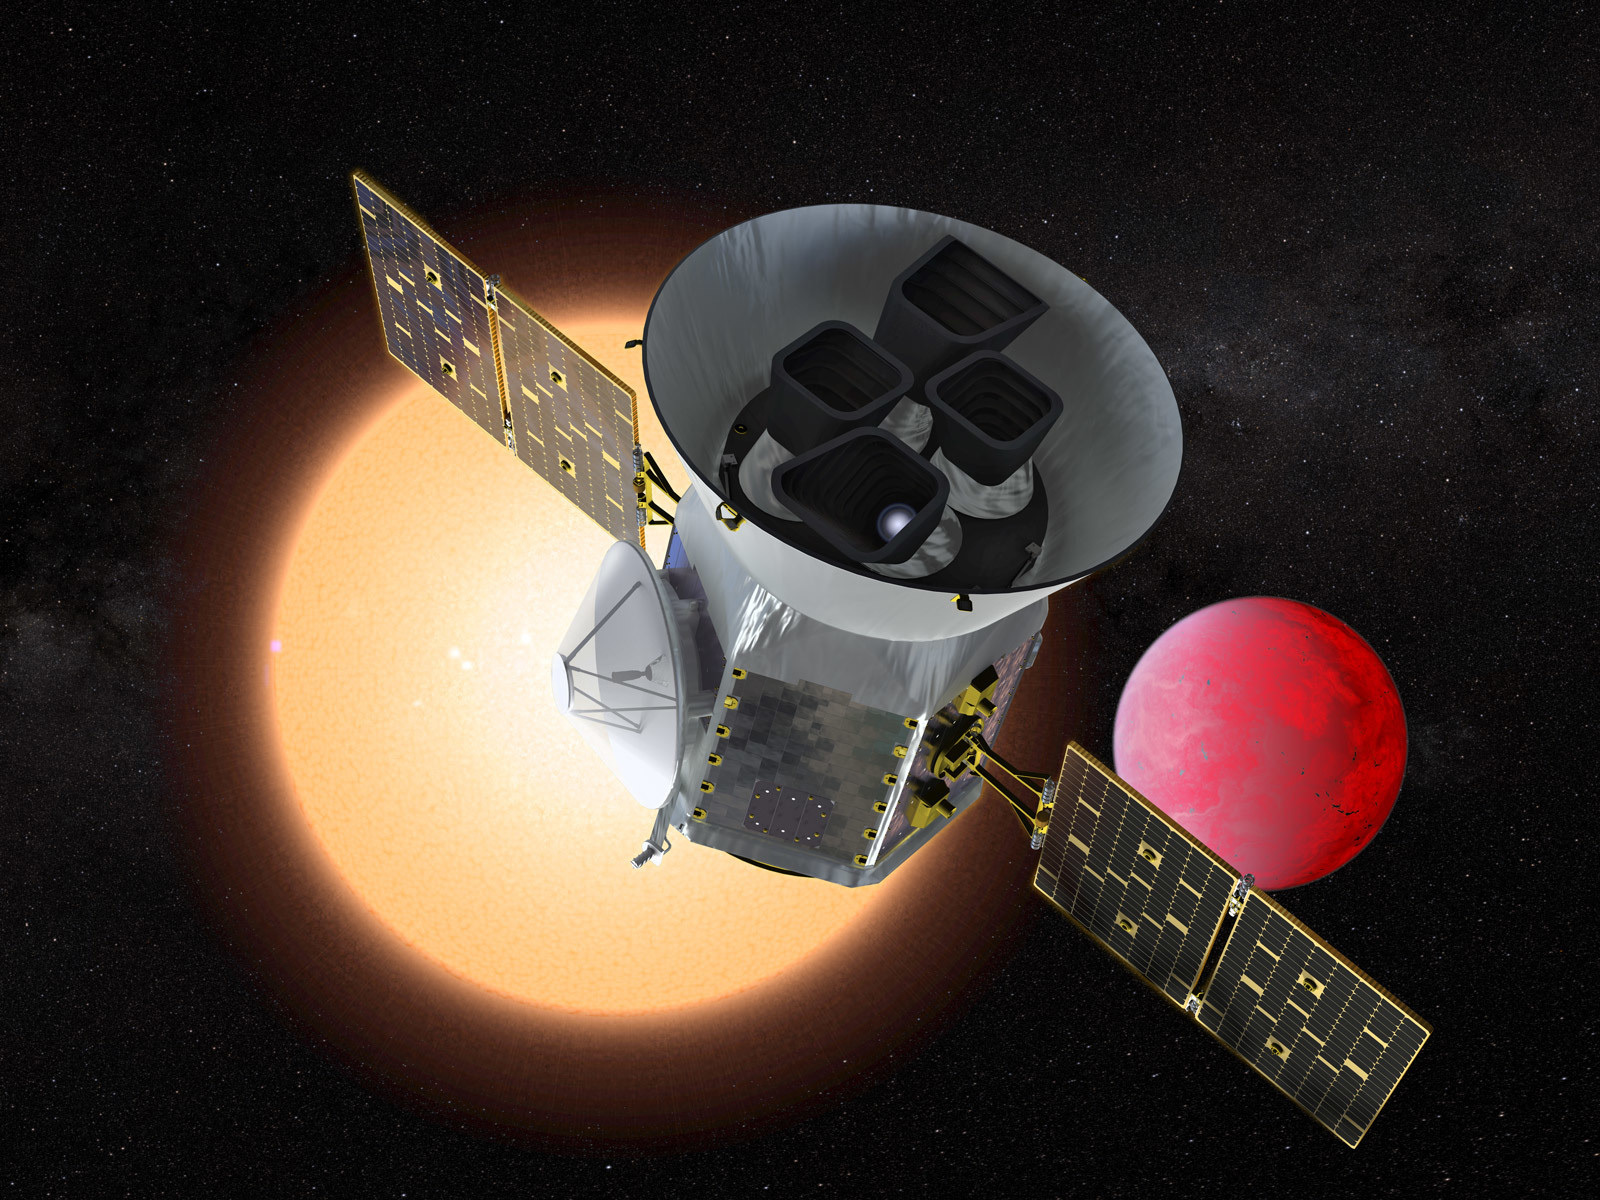 Illustration of spacecraft, distant star and lava planet.